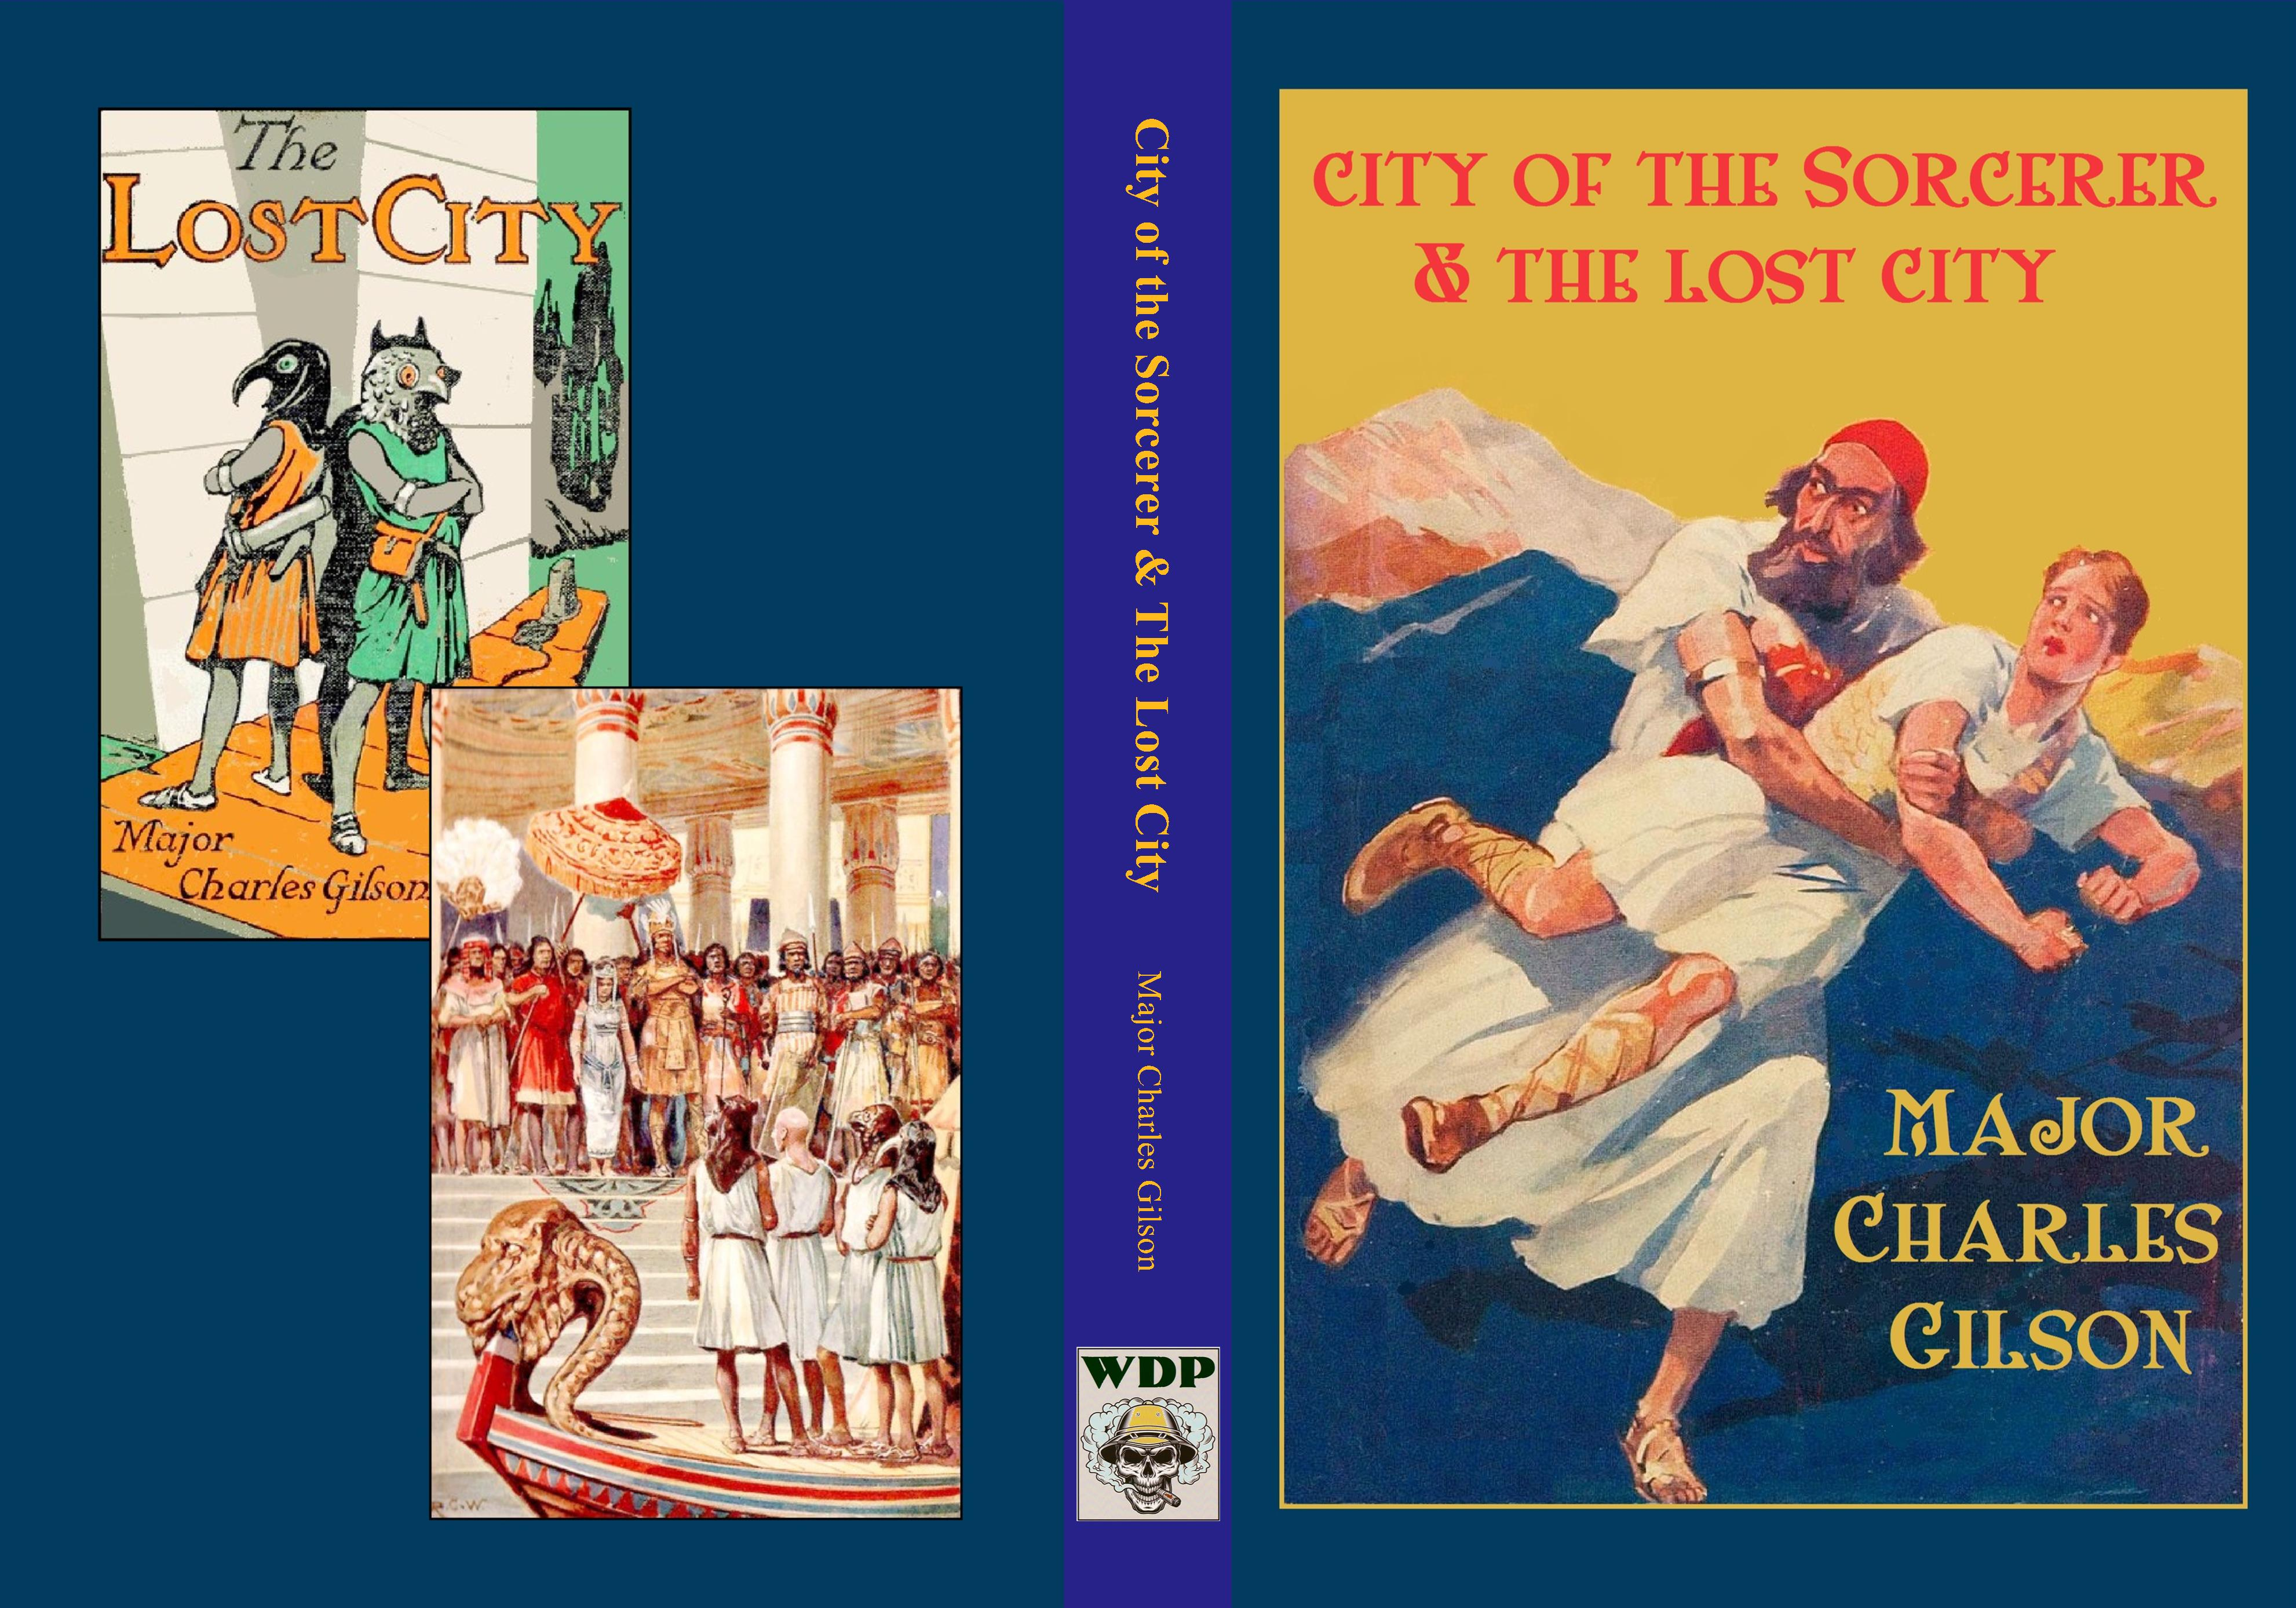 City of the Sorcerer & The Lost City cover image